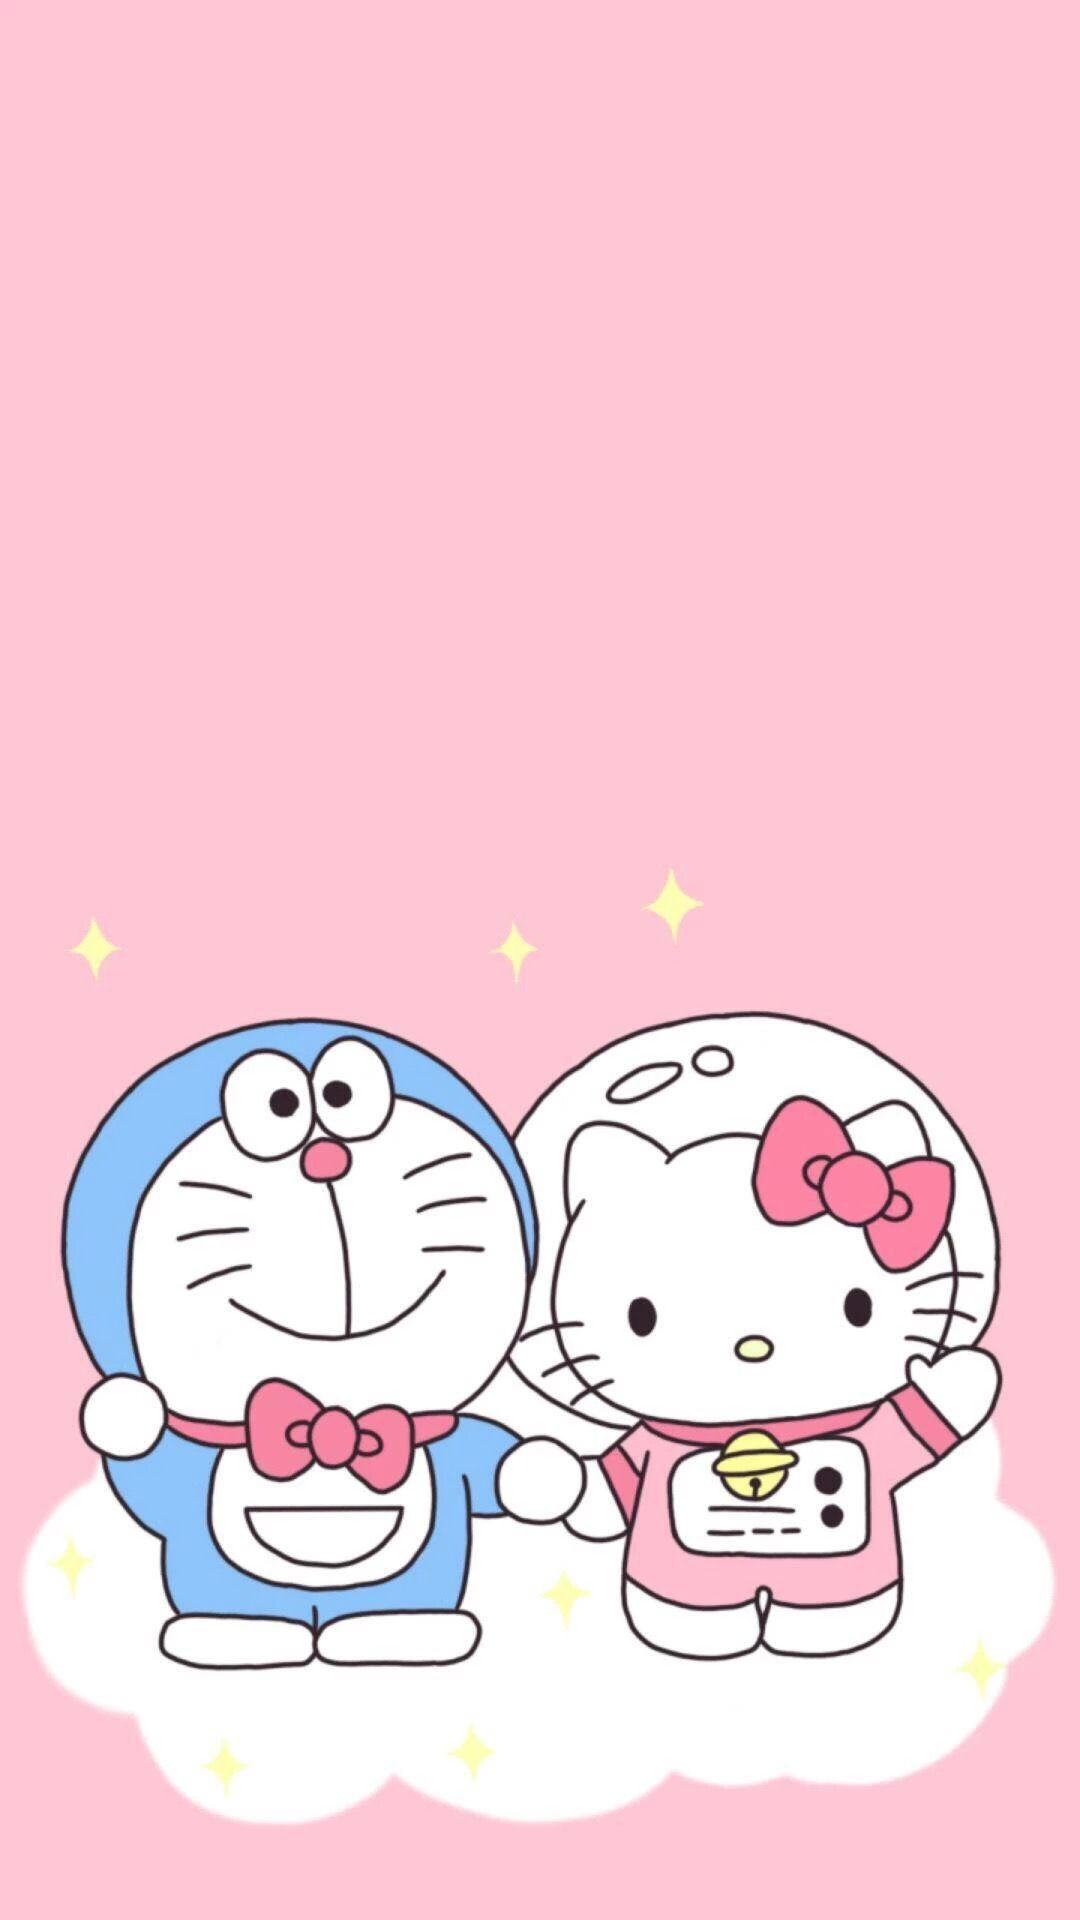 Download 100+ Gambar Doraemon And Hello Kitty Paling Bagus Gratis